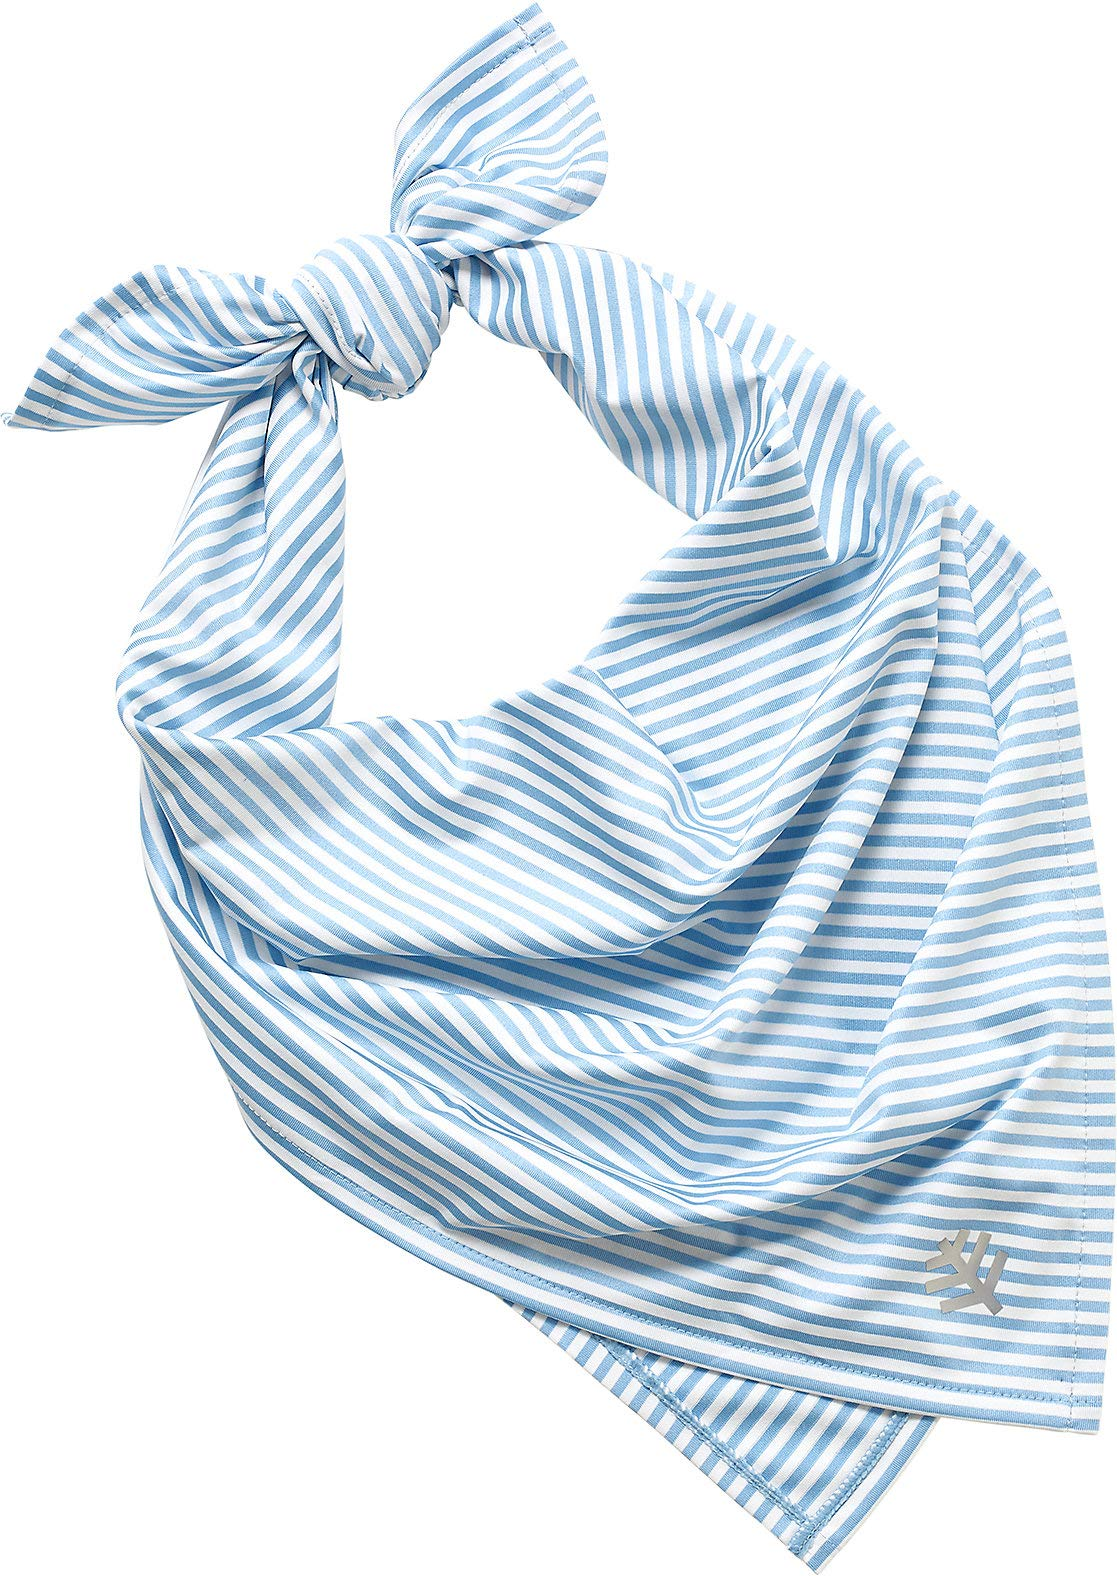 Coolibar UPF 50+ Men's Women's Performance Sun Bandana - Sun Protective (One Size- Vintage Blue/White Stripe) by Coolibar (Image #1)